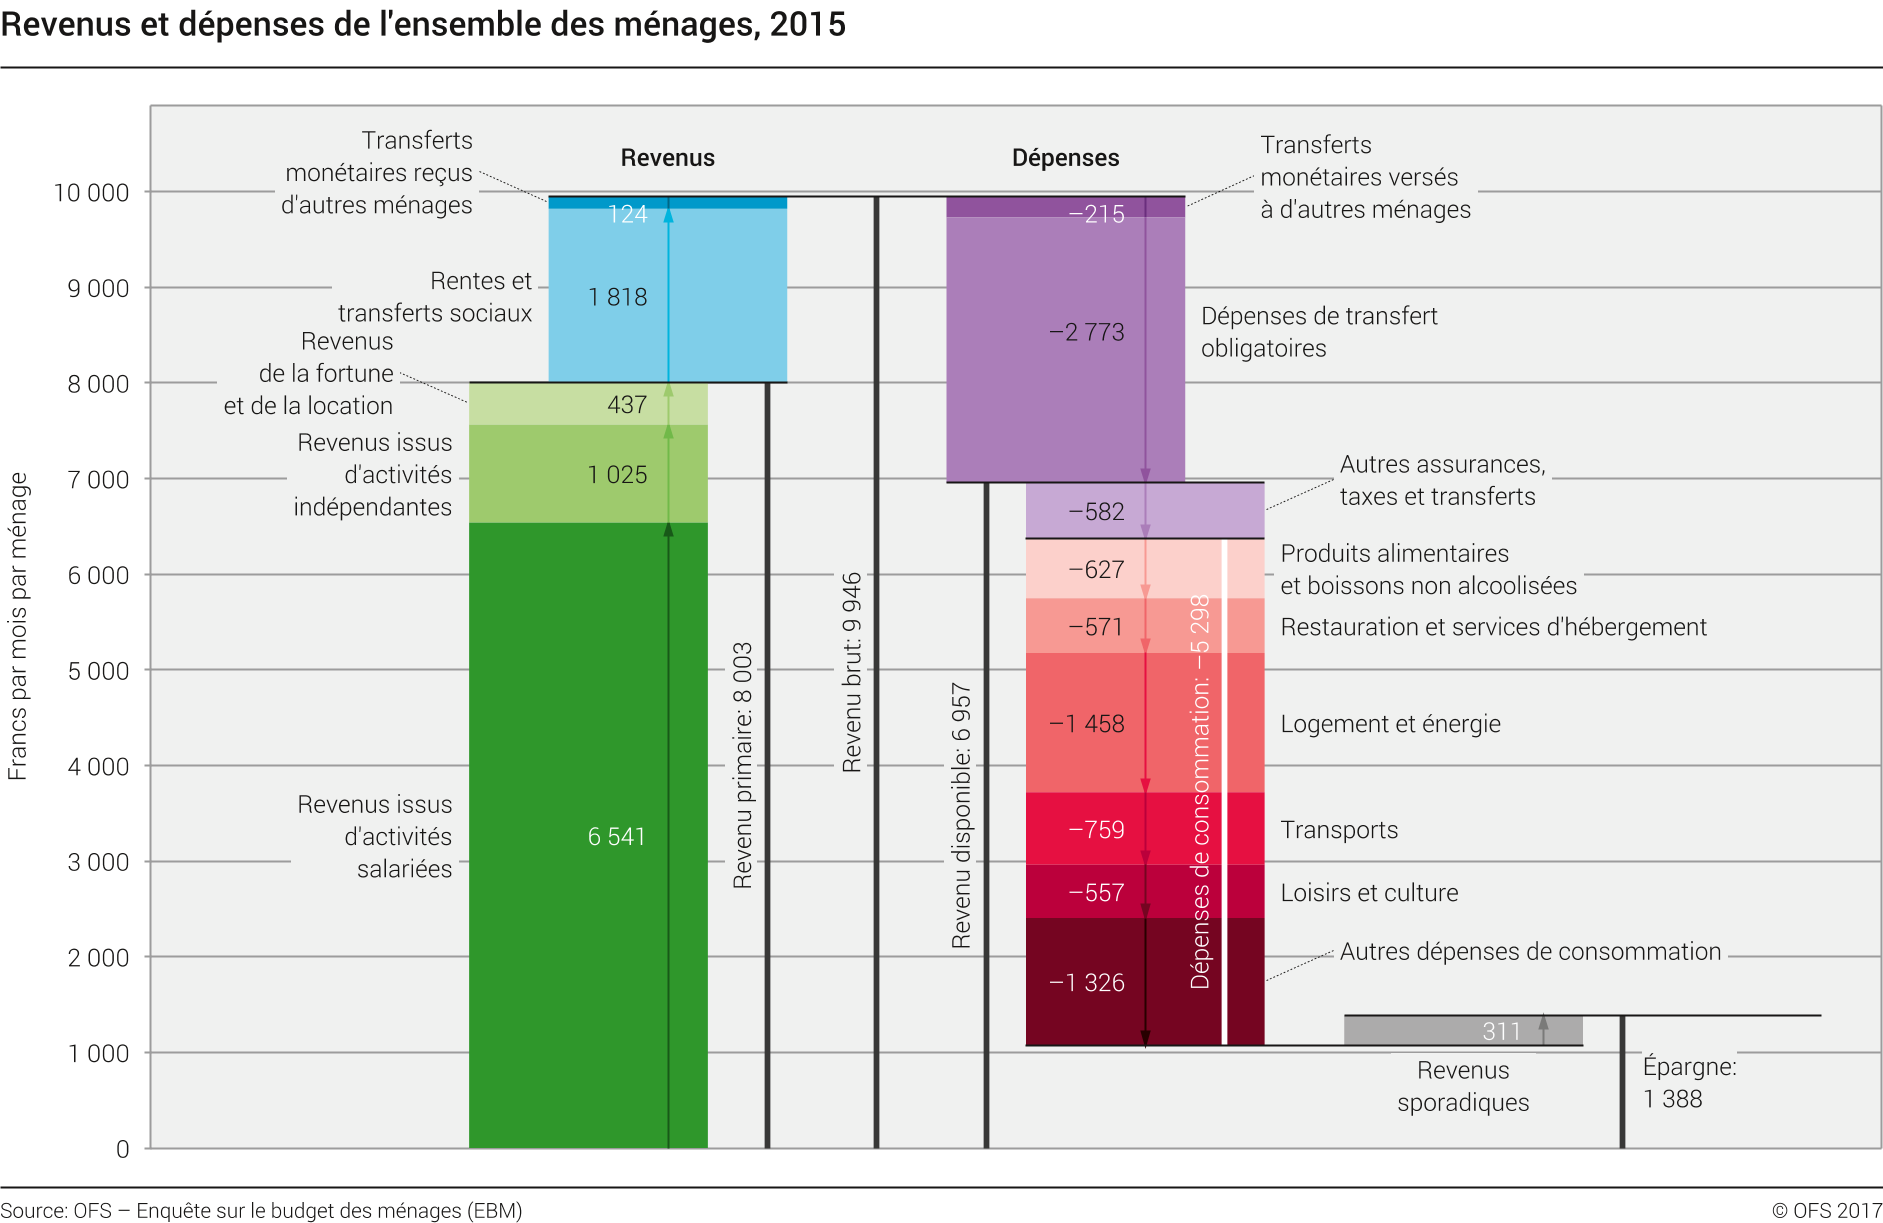 Income and Expenditure of All Households for 2015